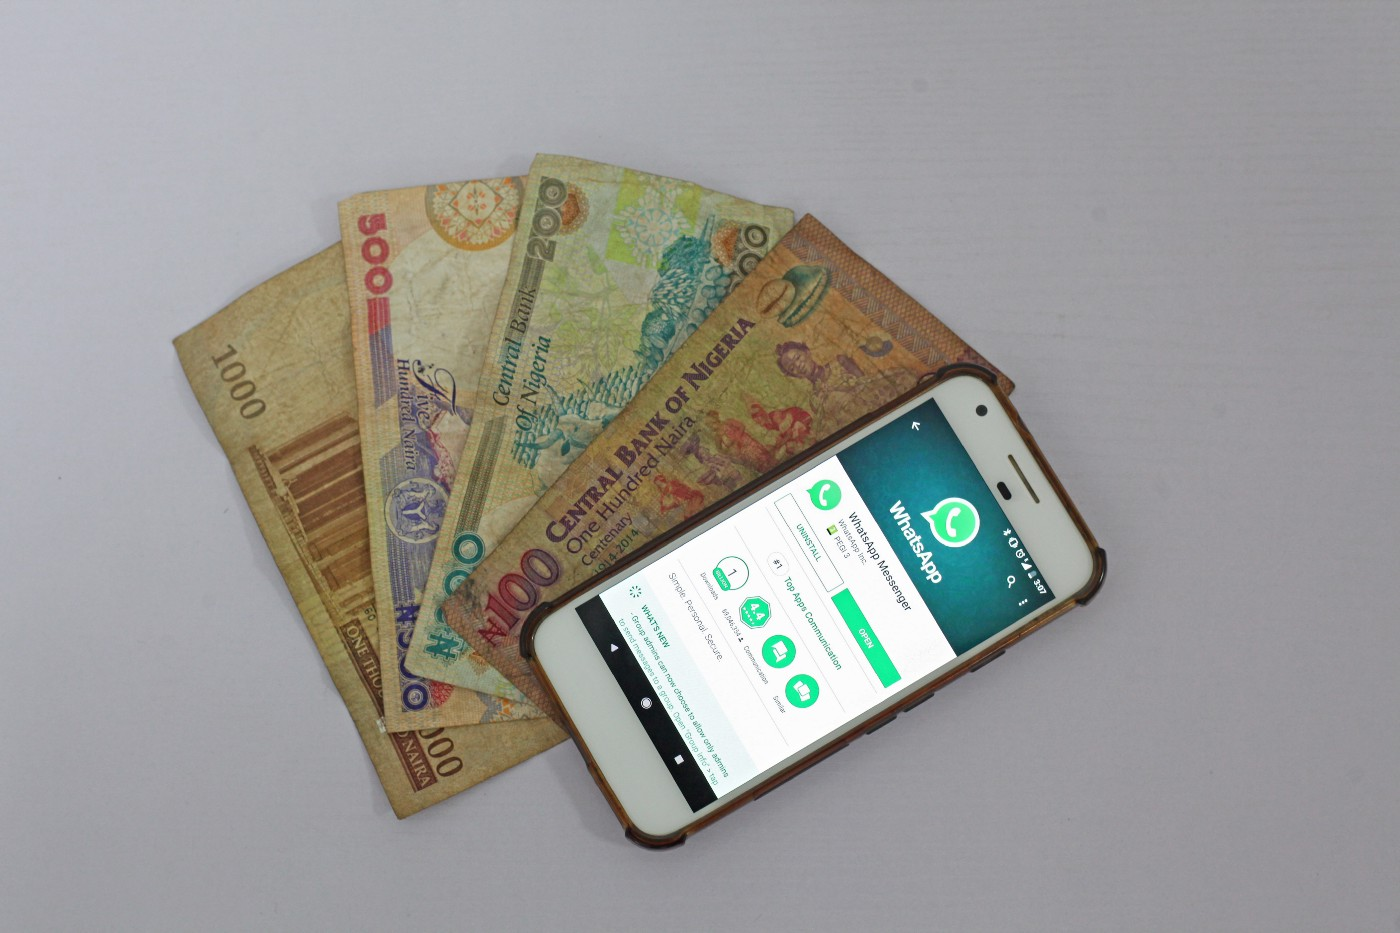 How to invest in cryptocurrencies and decentralized finance (DeFi): Crypto Wallet vs Wallet App (Part 3)